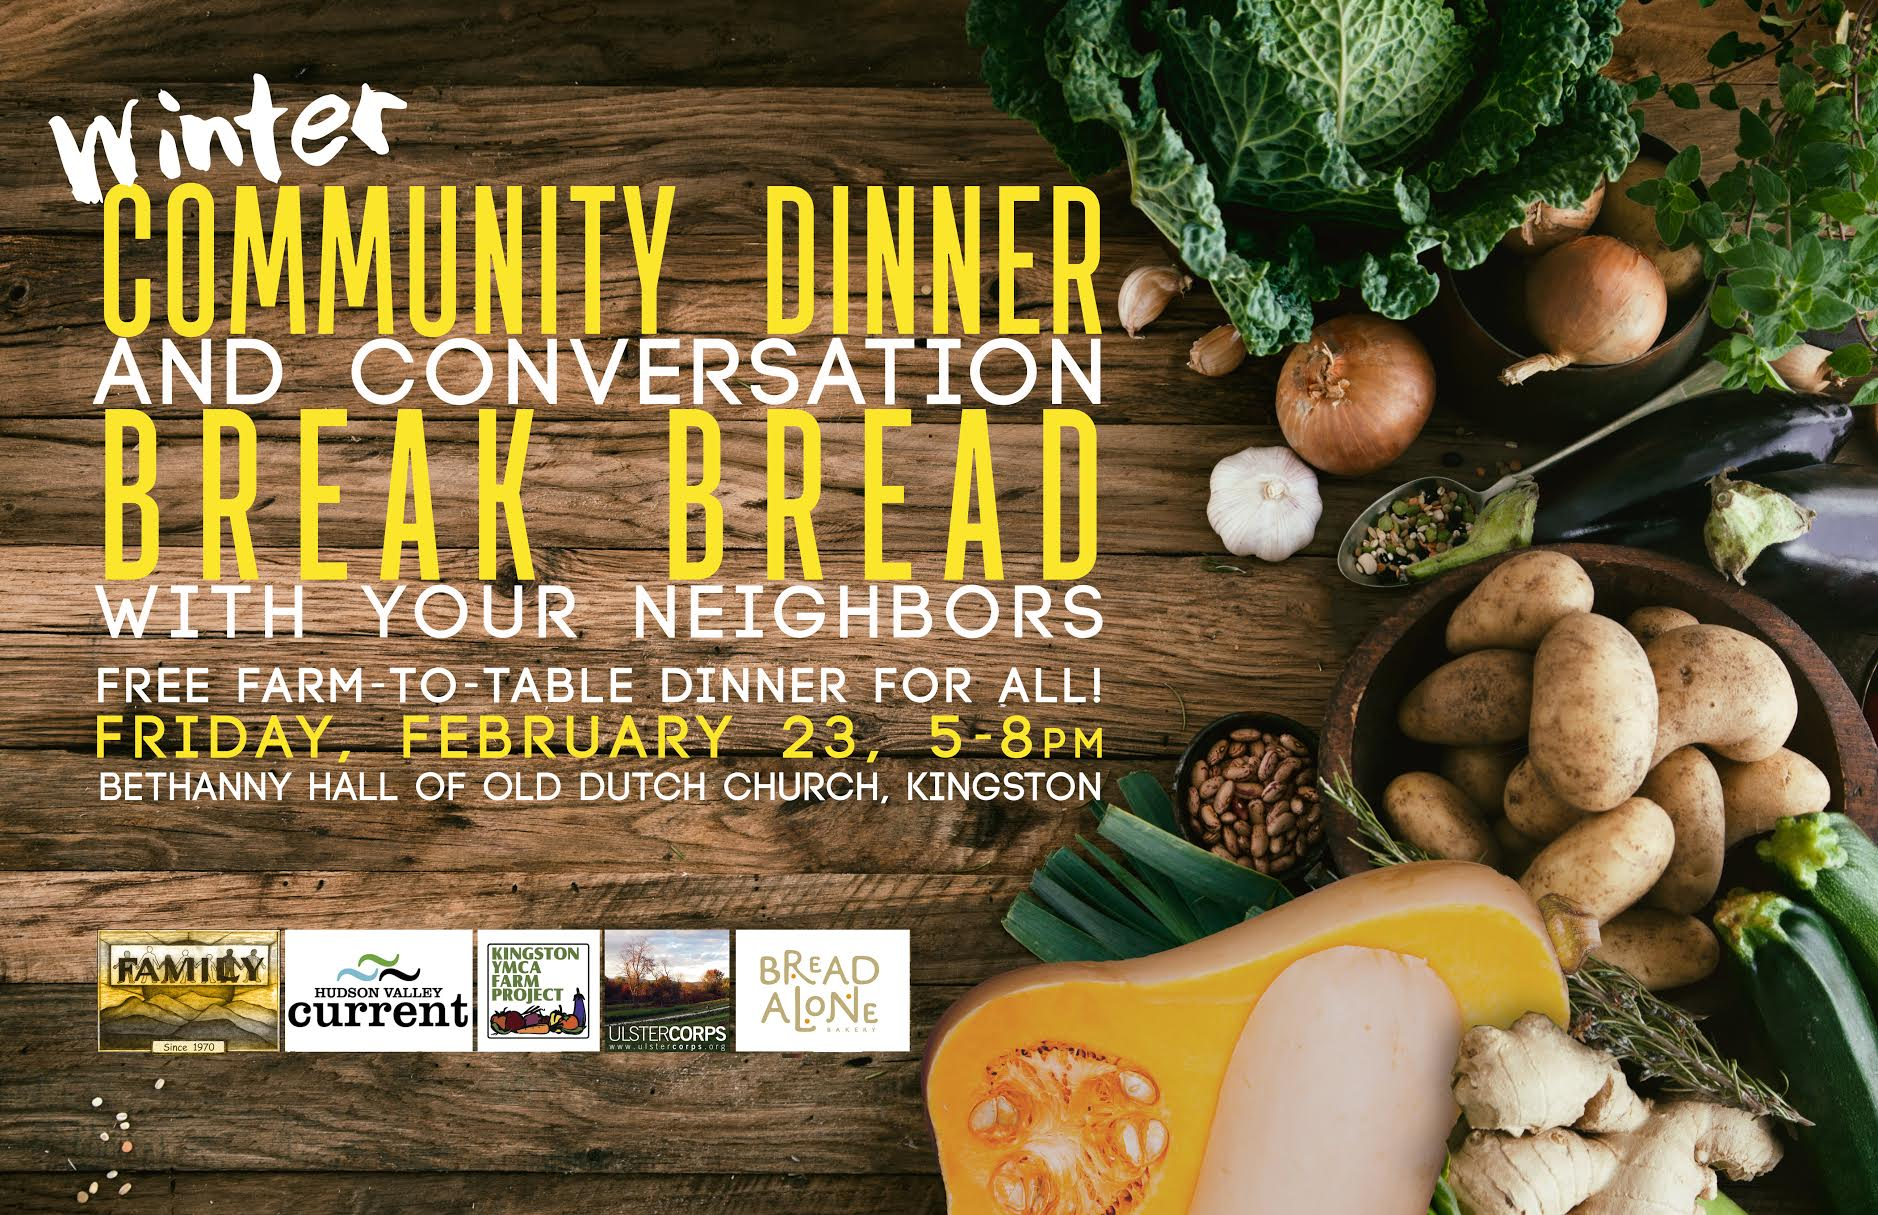 Kingston Community Dinner